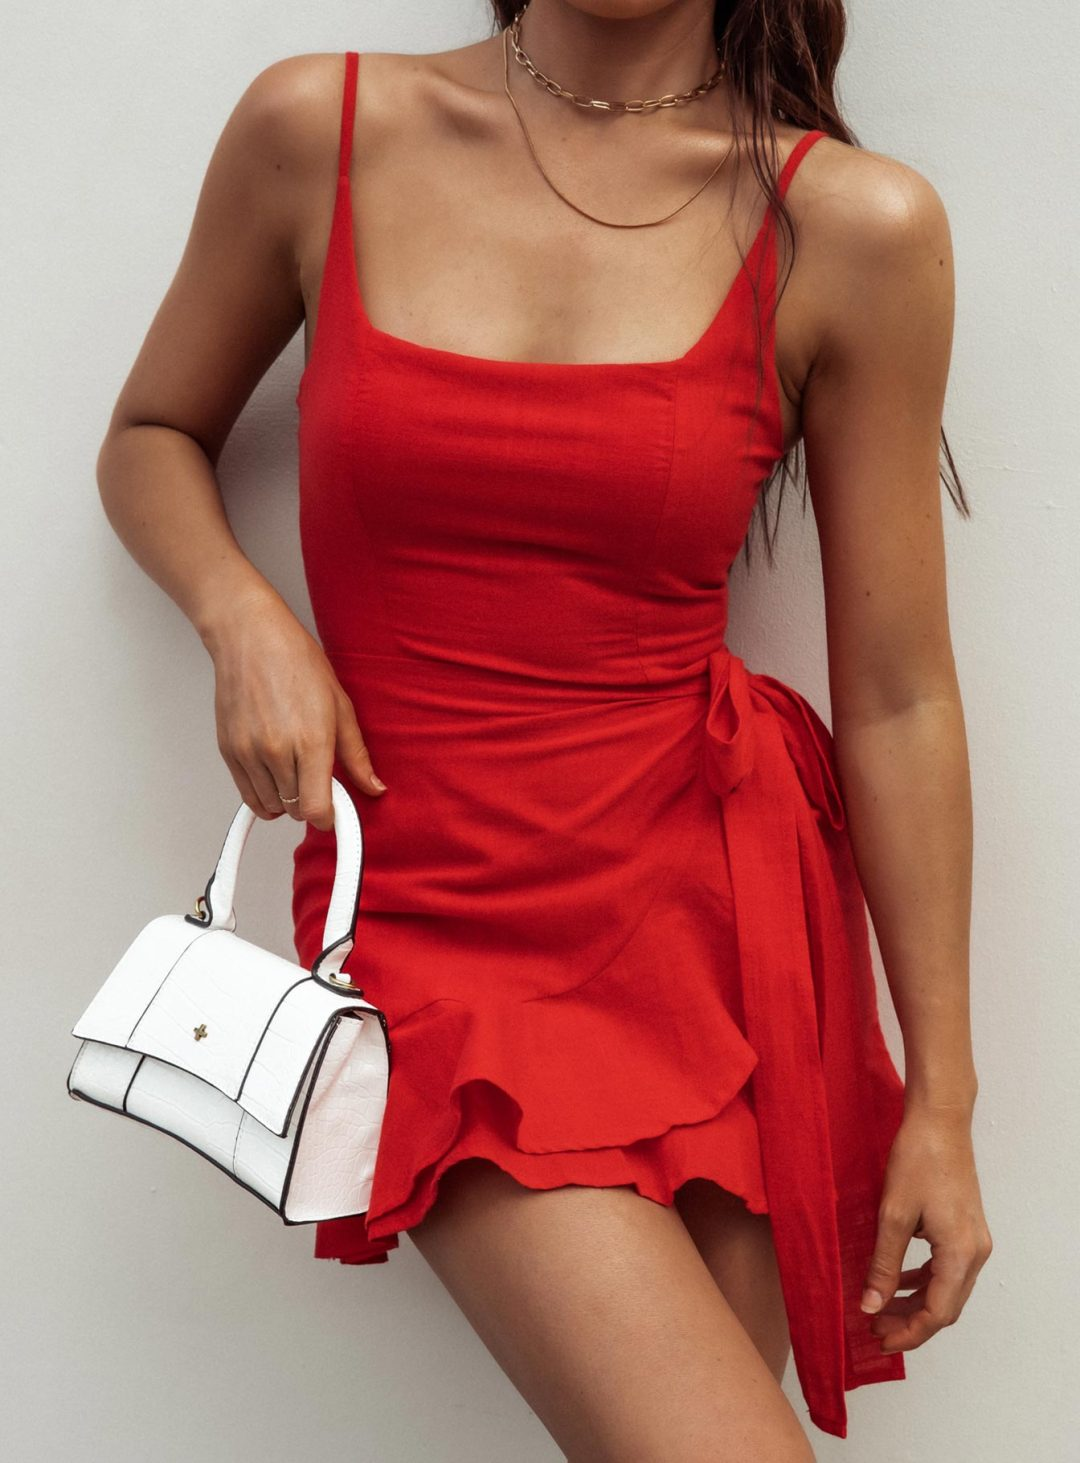 The Best Red Dresses For Date Night: Princess Polly